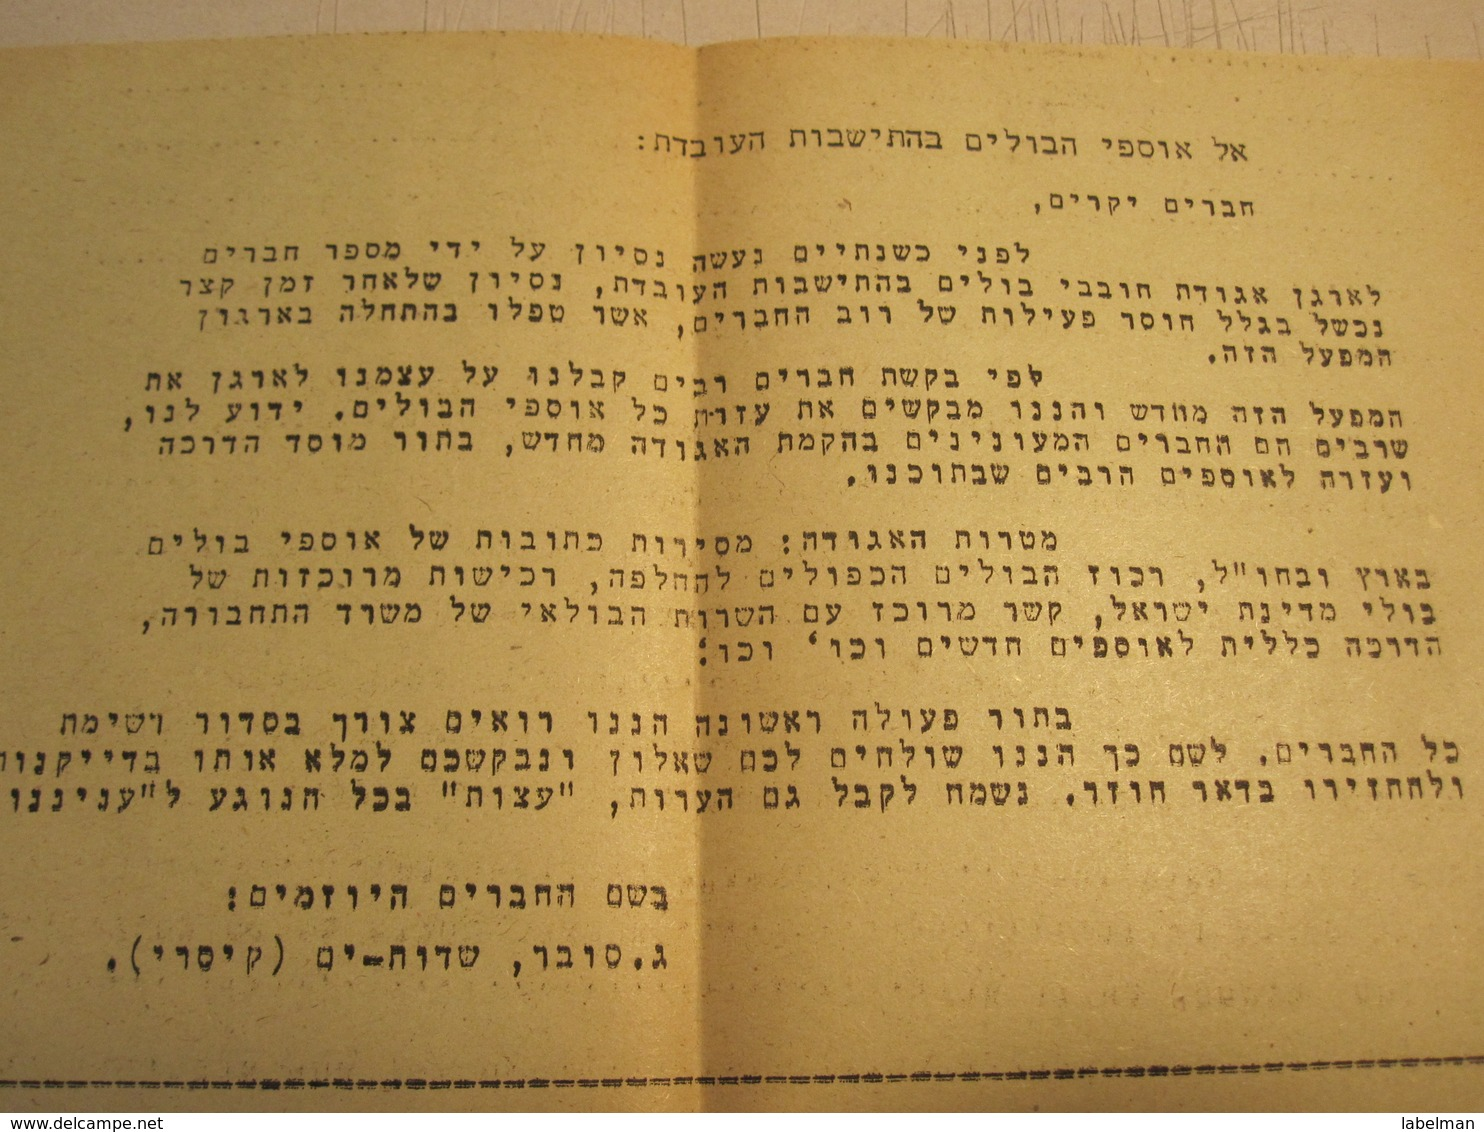 PHILATELIC CLUB MEMORANDUM TO MEMBERS STAMPS COLLECTOR FLYER LOGO PALESTINE VINTAGE ISRAEL POST INFO INFORMATION LETTER - Invoices & Commercial Documents